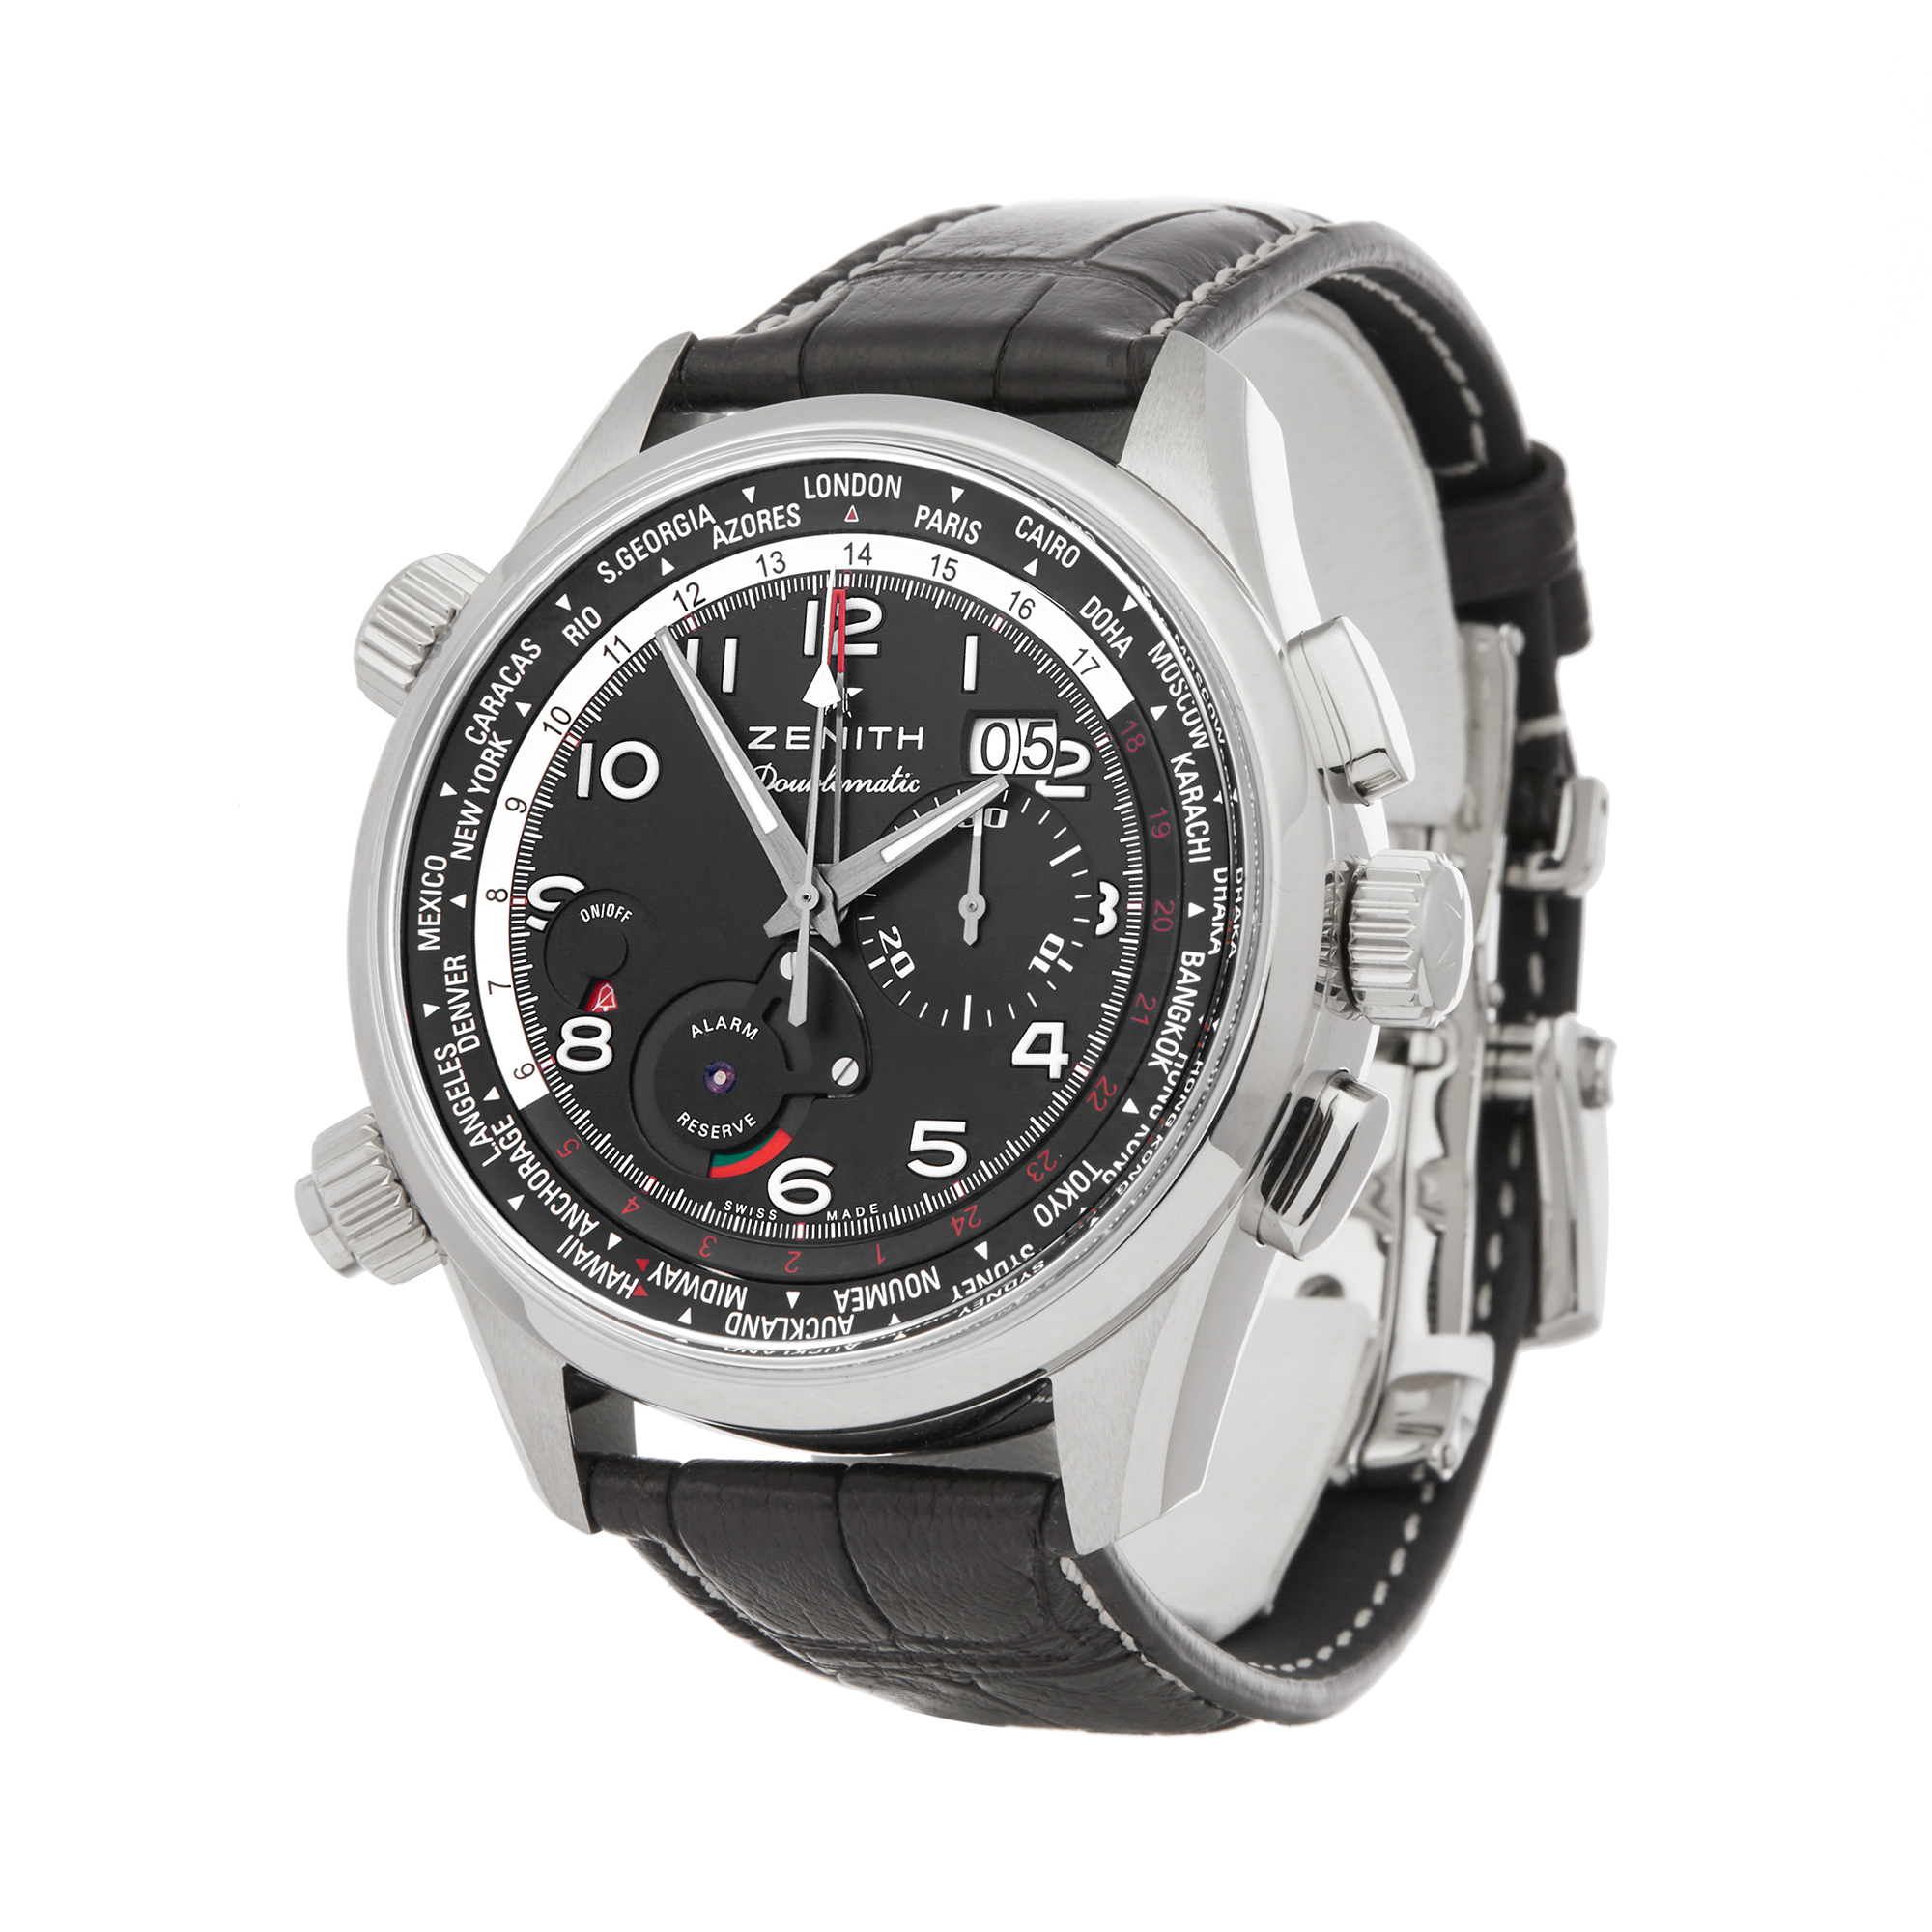 Zenith Doublematic 0 03.2400.4046/21.C721 Men Stainless Steel Chronograph Watch